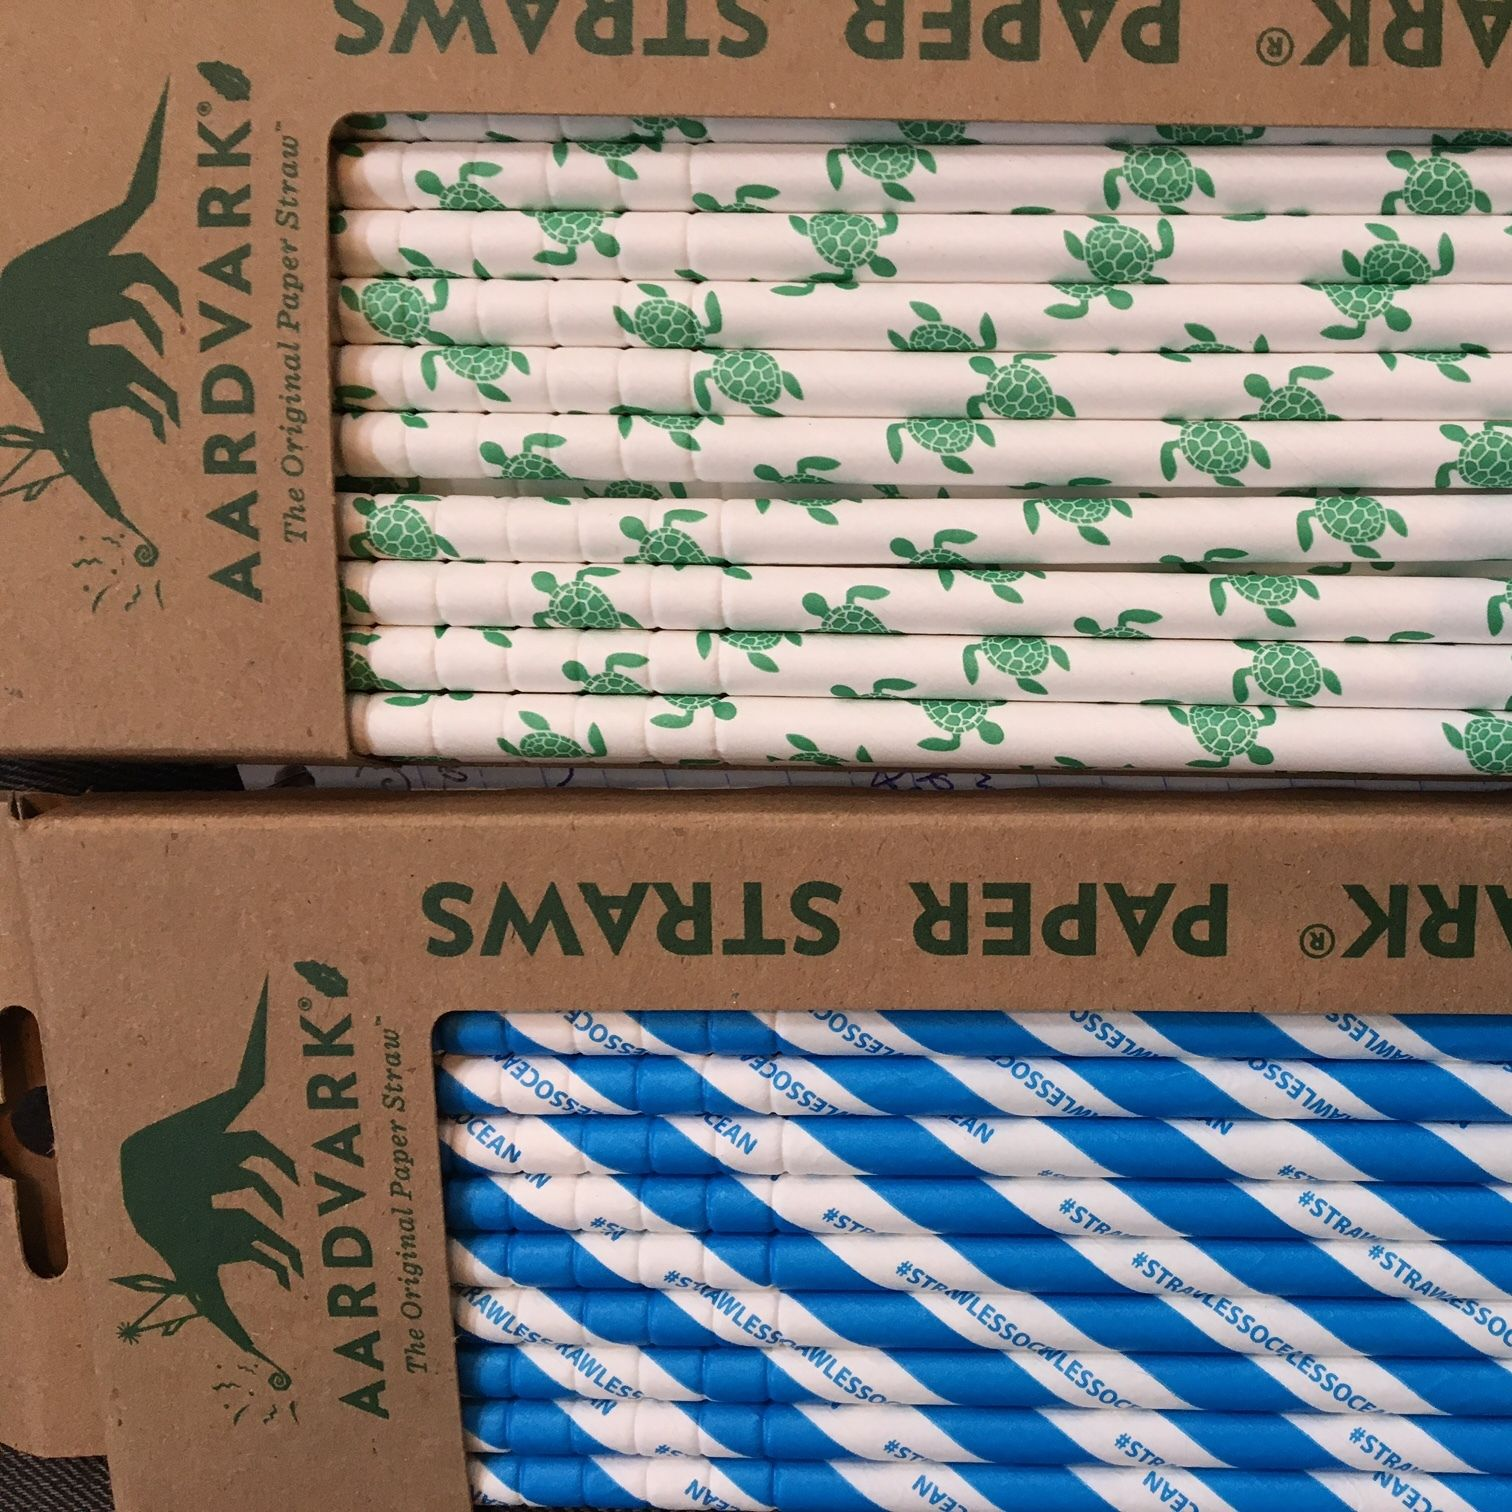 Paper straws lonely whale foundation 090817 lguui3